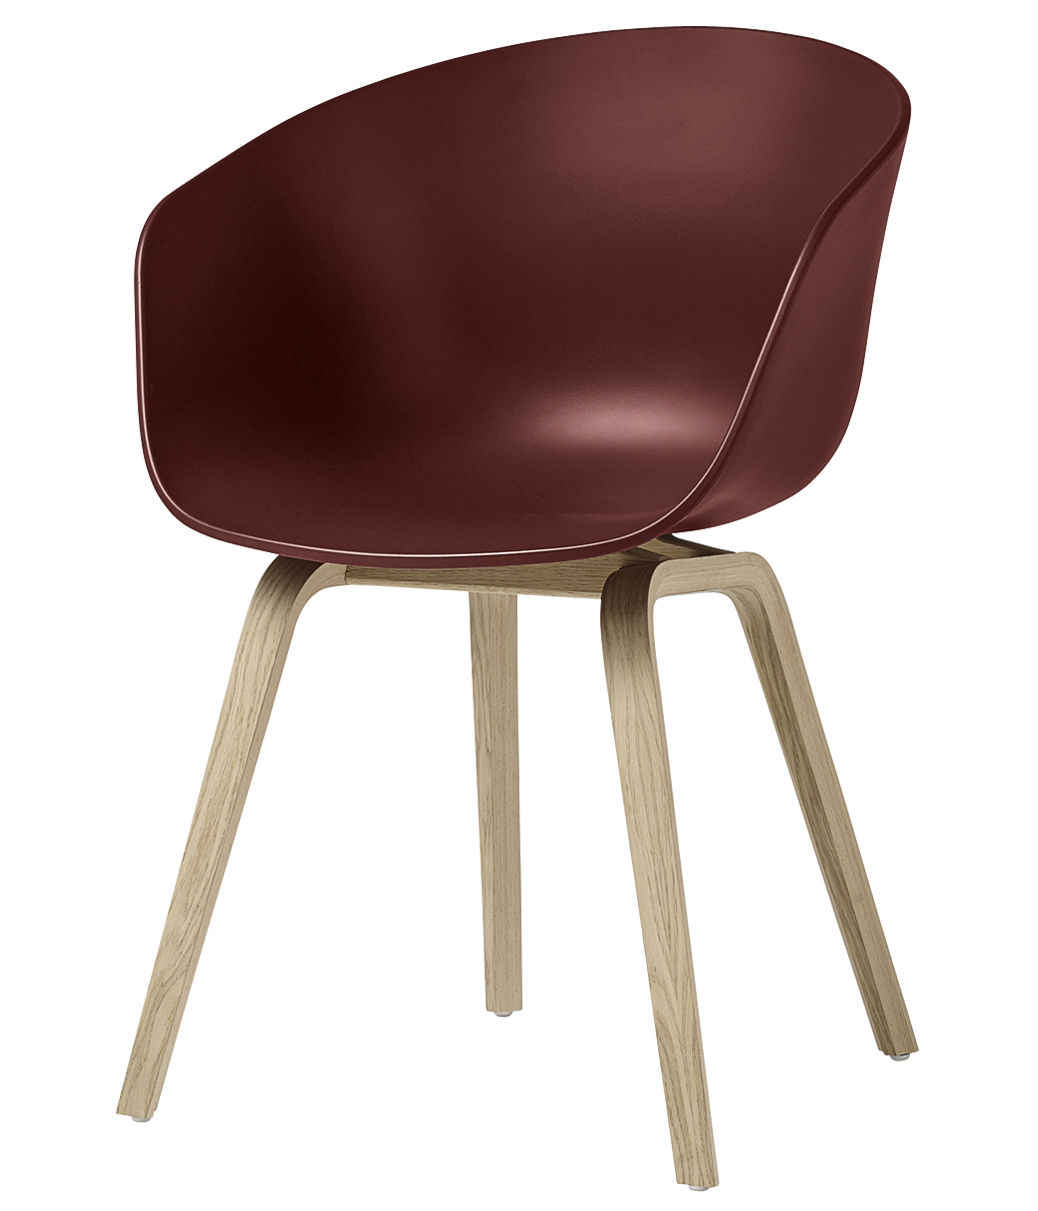 Furniture - Chairs - About a chair AAC22 Armchair - Plastic & wood legs by Hay - Terracotta / Wood legs - Natural oak, Polypropylene